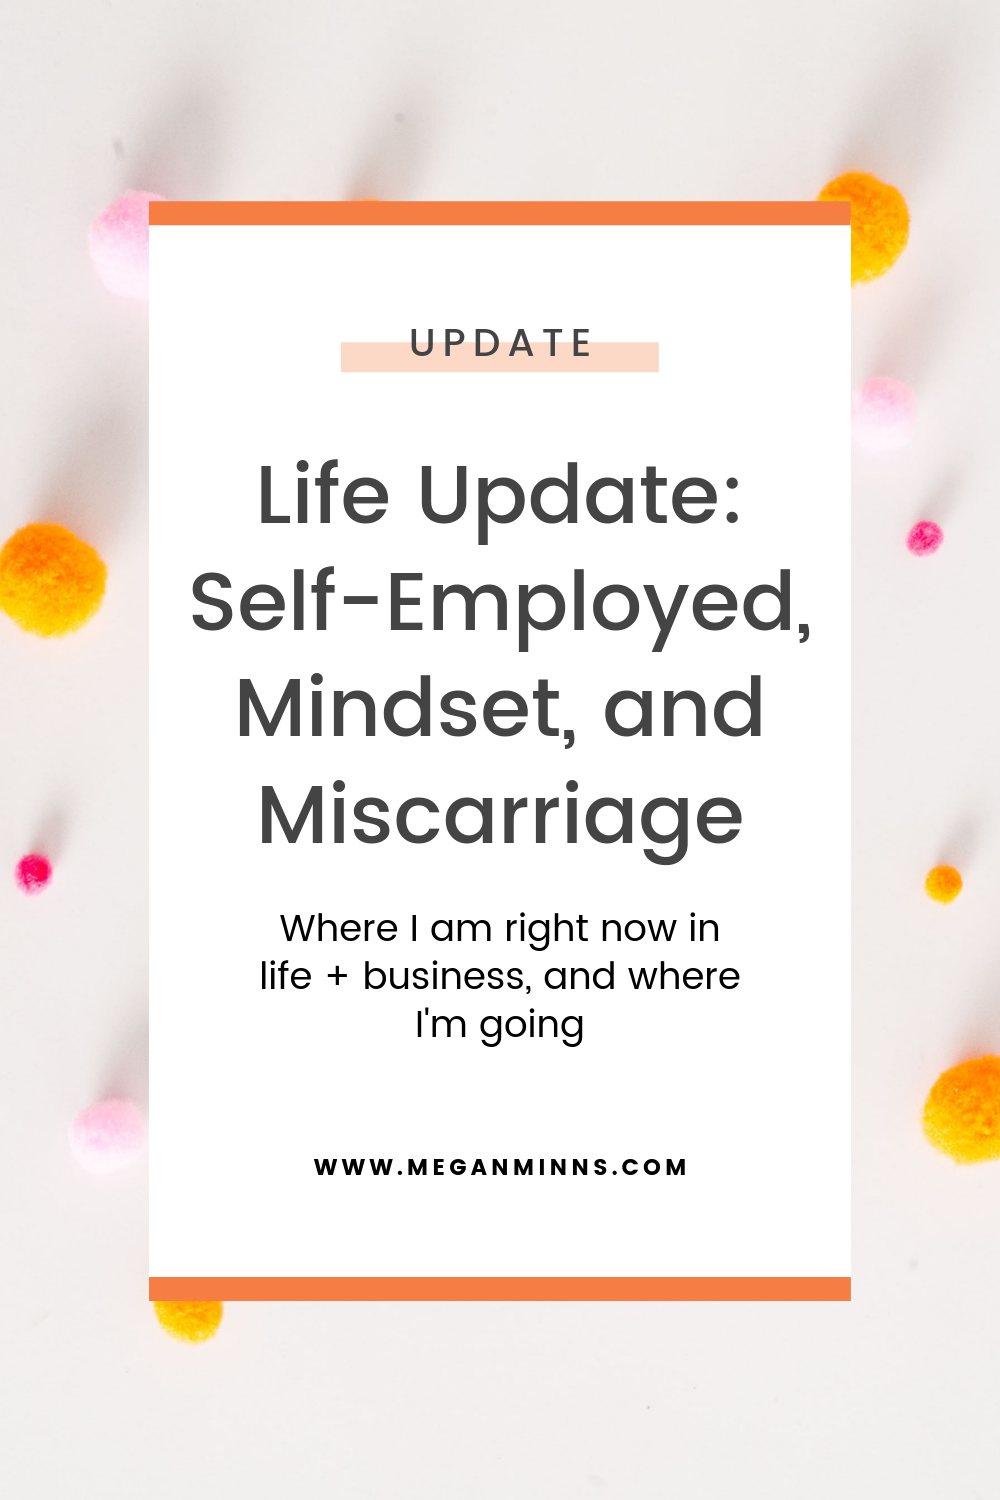 Full life update for 2019! What my business and life look like now, and what the future entails (hint: I'm now offering private coaching!). I talk all about going self-employed full time, my mindset, and sharing my very personal miscarriage story.  READ THE FULL BLOG POST HERE ➡️ https://meganminns.com/blog/life-update-2019